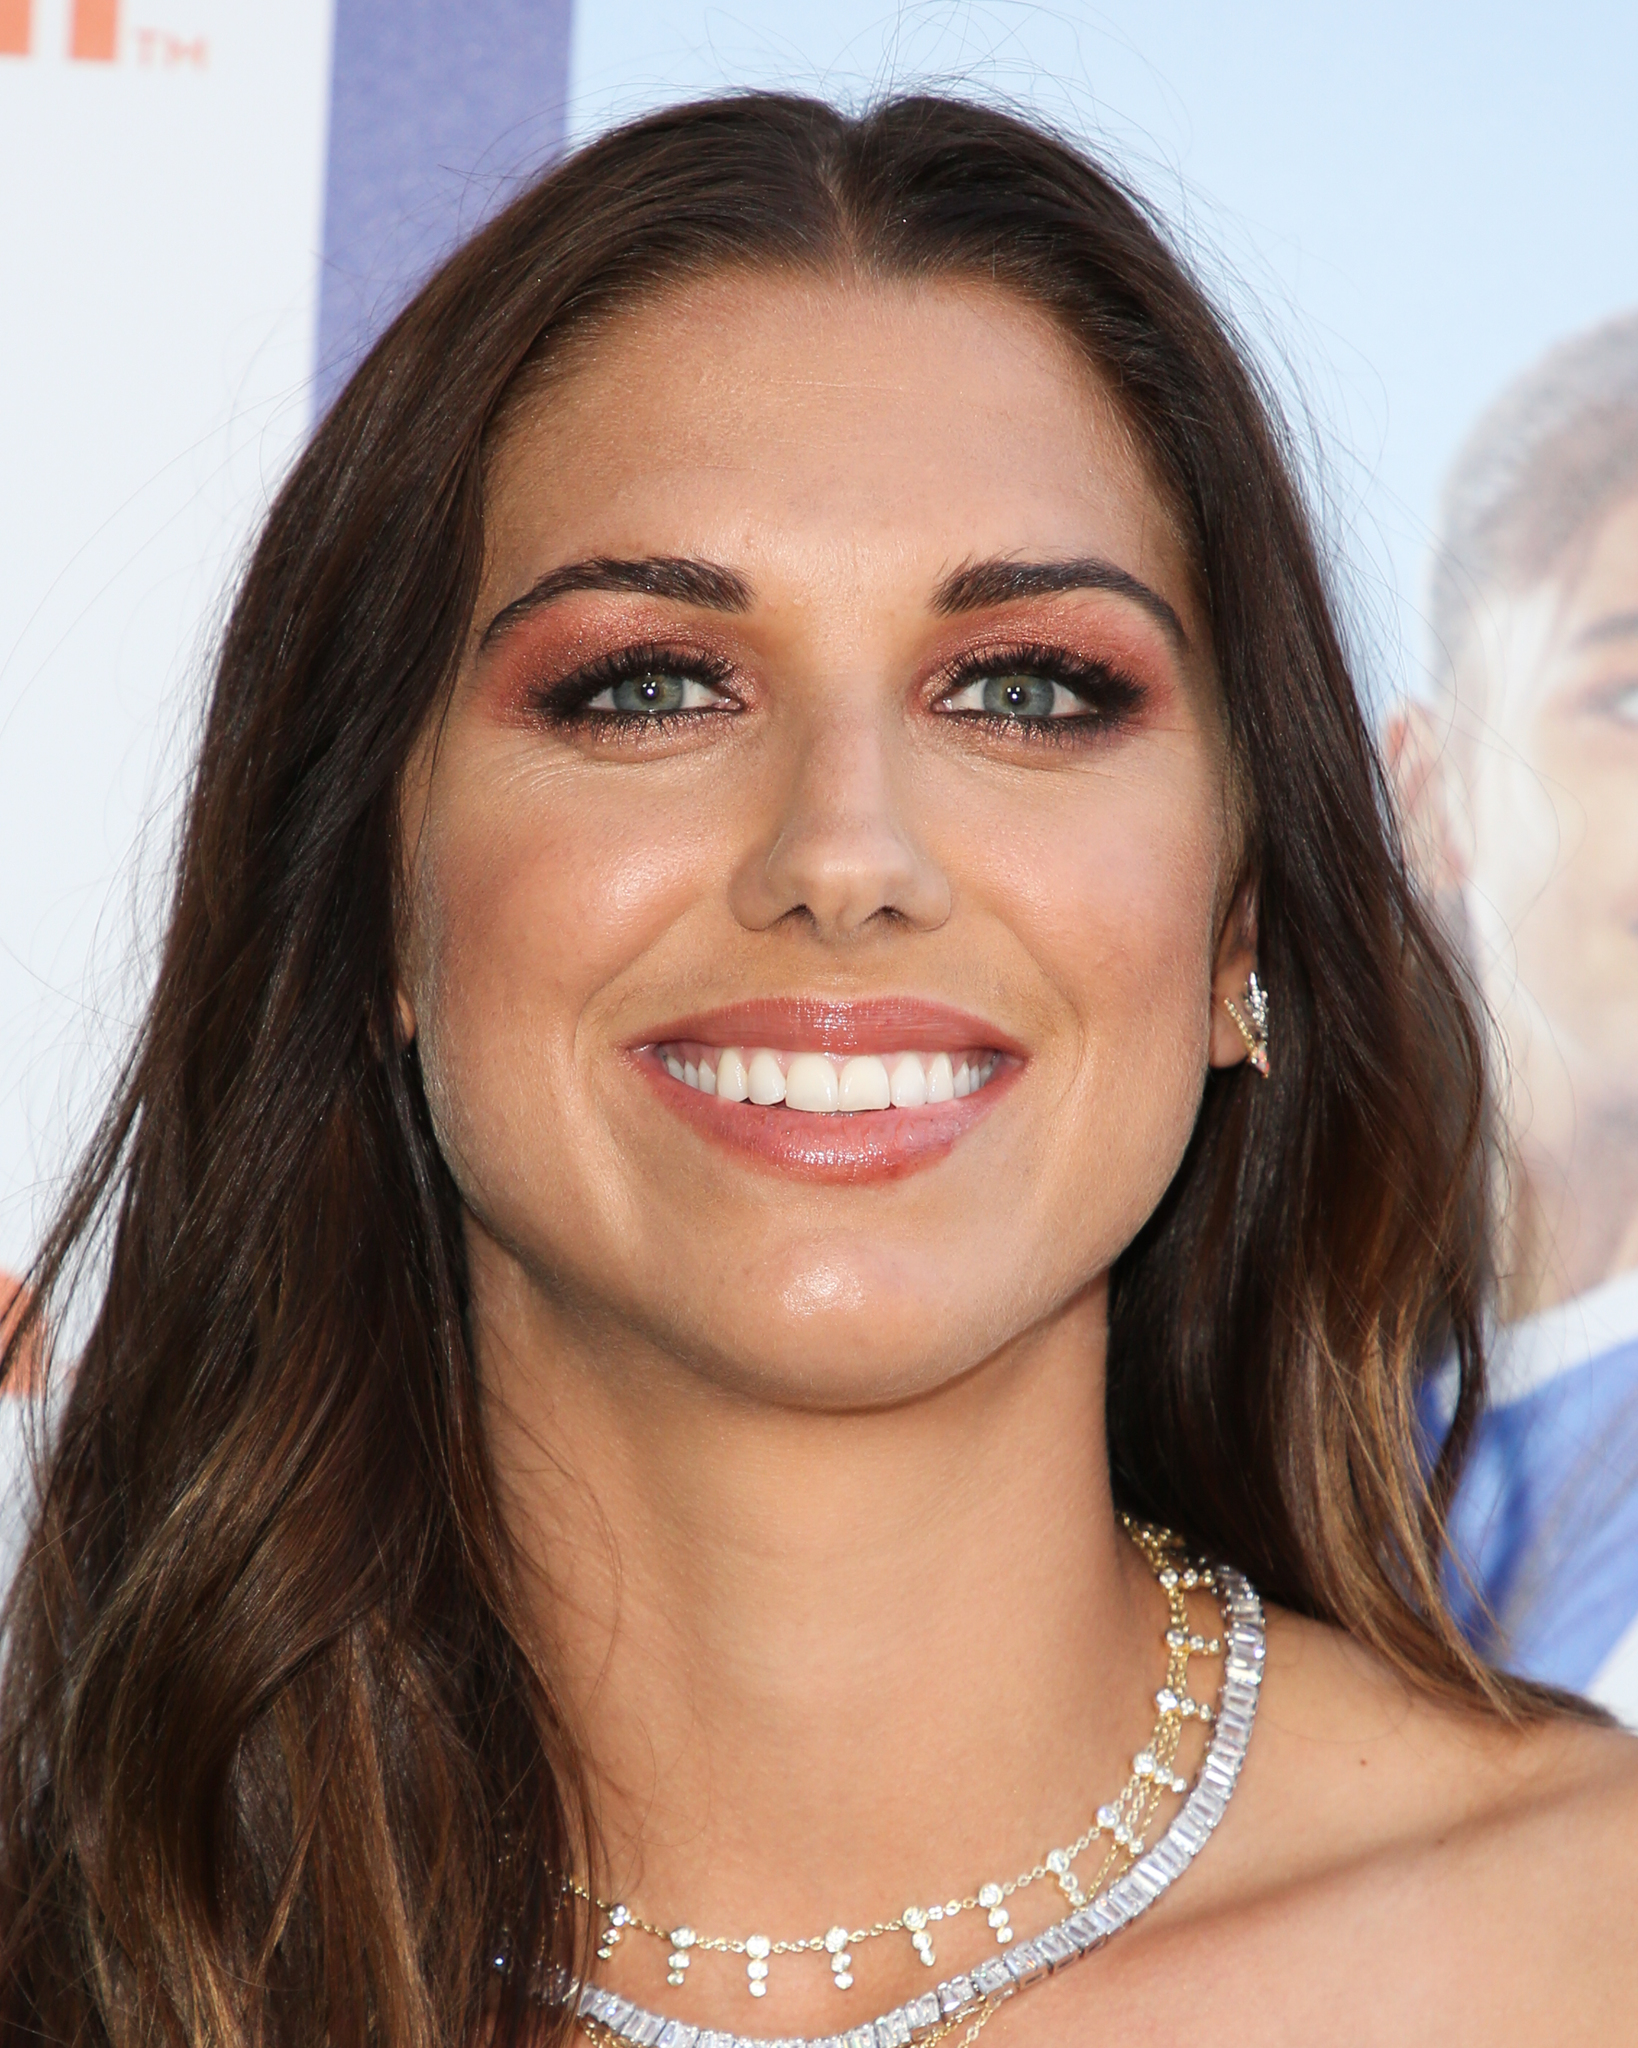 c220659f6 Alex Morgan - IMDb